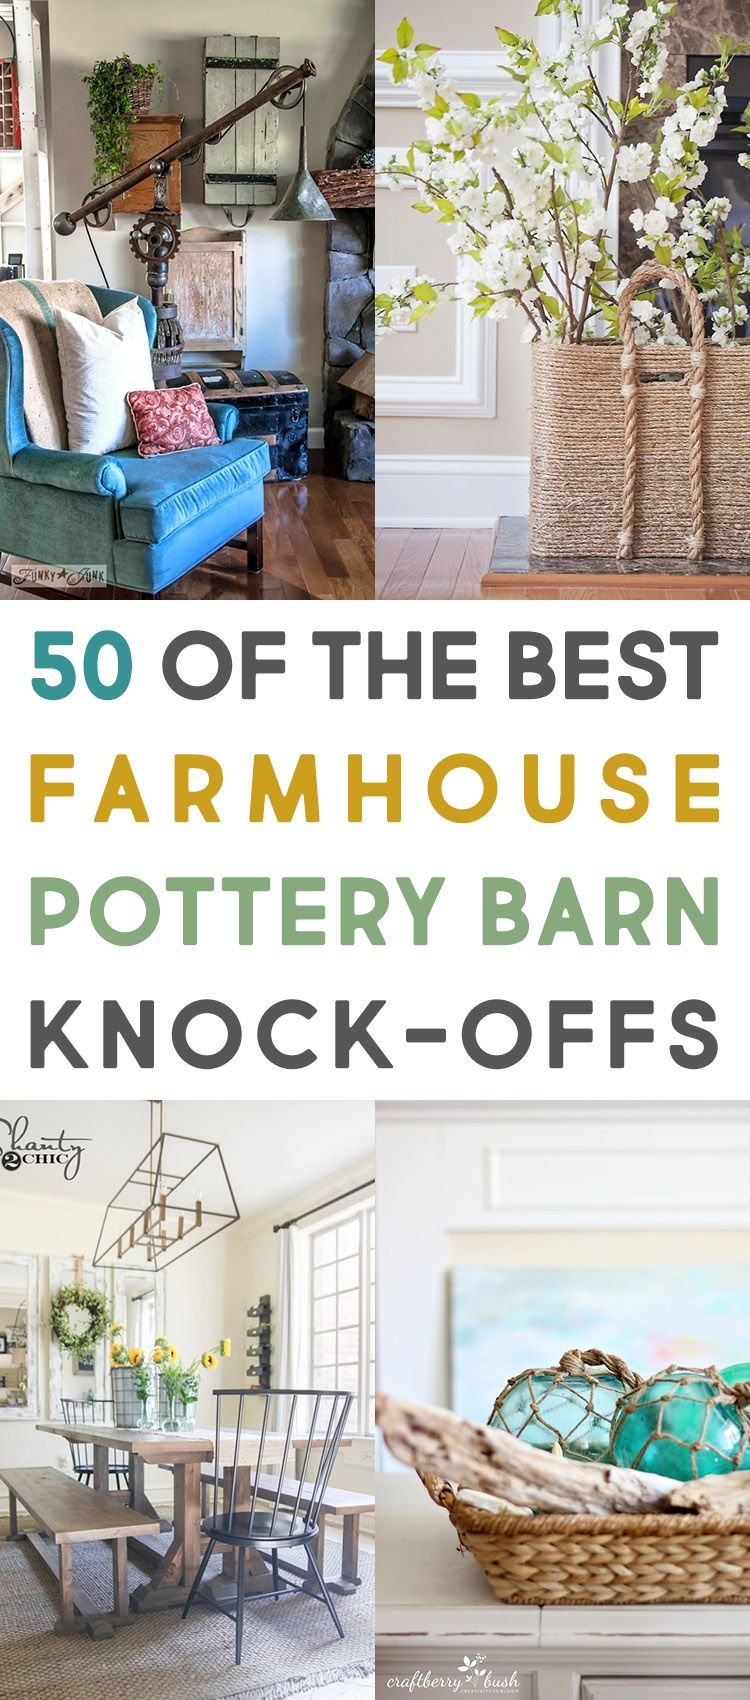 50 of The Best Farmhouse Pottery Barn Knock-Offs – The Cottage Market